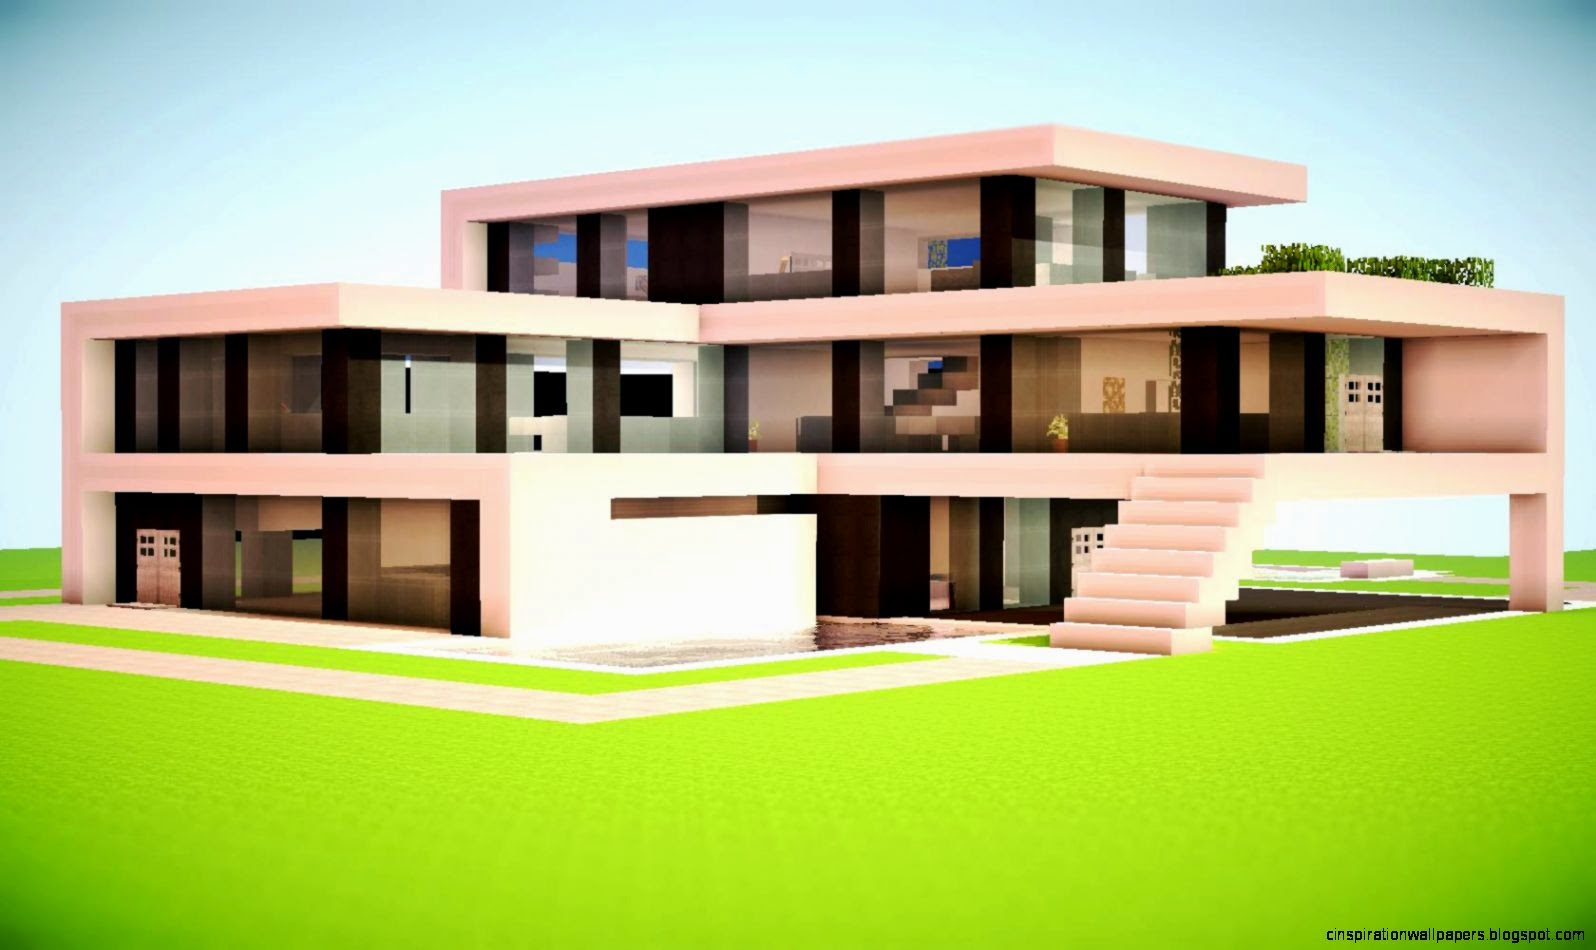 Minecraft modern house designs inspiration wallpapers for Home designs minecraft